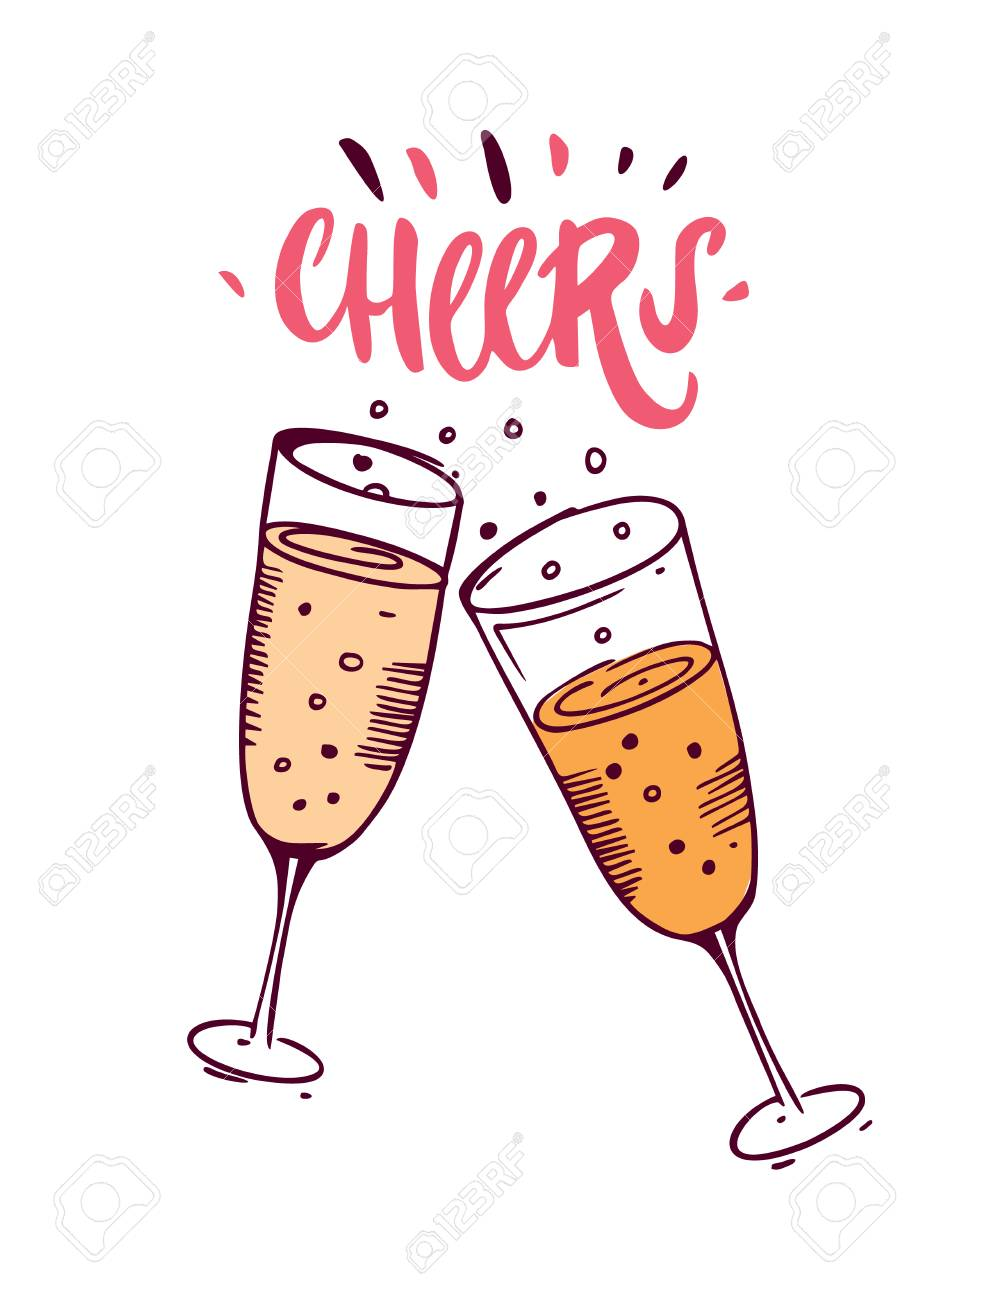 1b6f469f631 Cheers with hand drawn wine glasses template design Stock Vector - 100325899